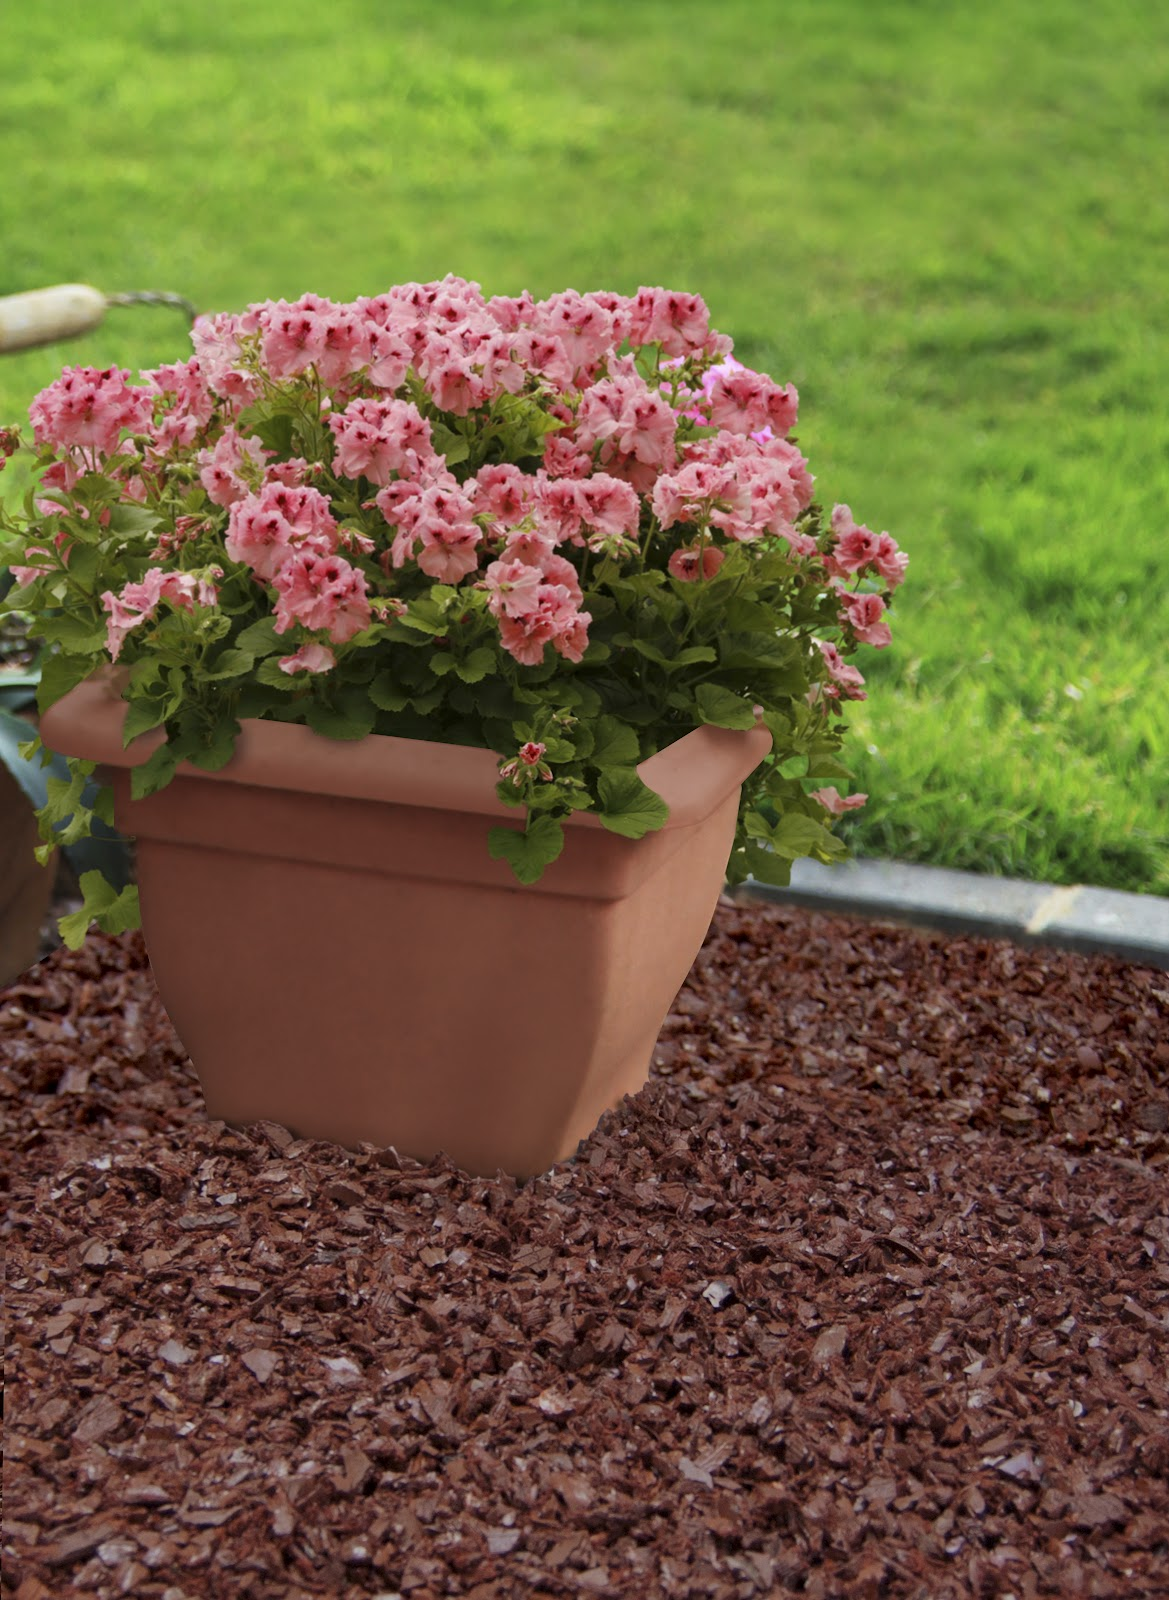 how to apply mulch garden flowers compost leaves grass clippings